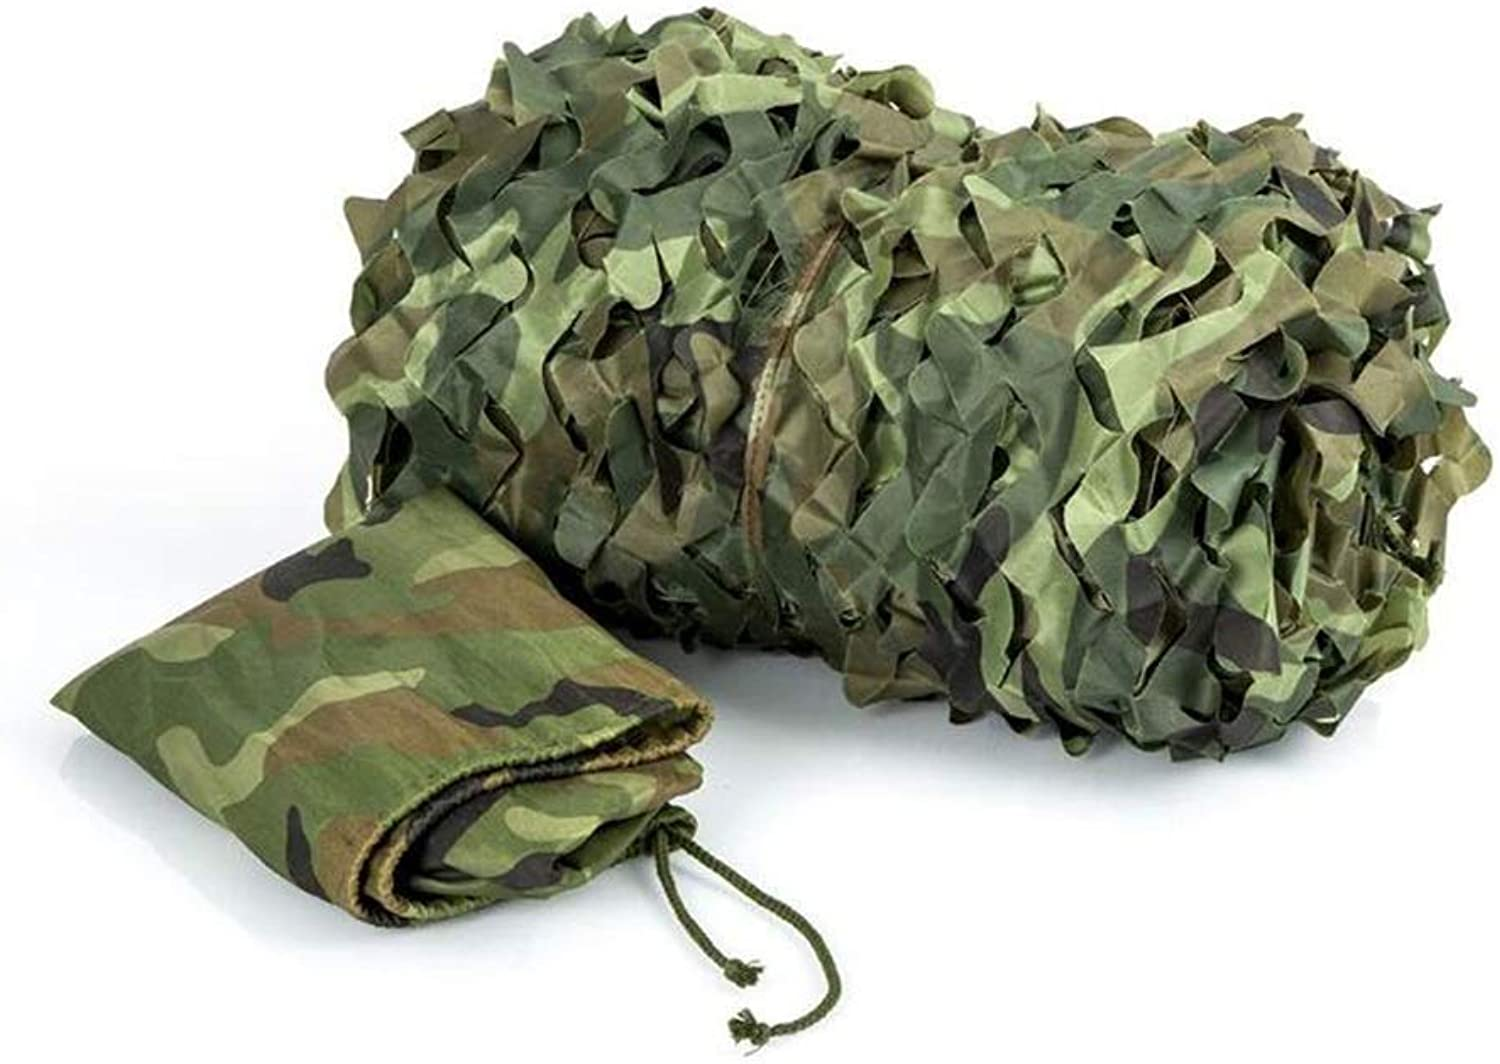 Outdoor Visor Camouflage Net Camouflage net Outdoor Jungle Decoration Hidden Military net of Various Sizes (Size  2x3m) (Size   2×7m) (Size   3×3m)